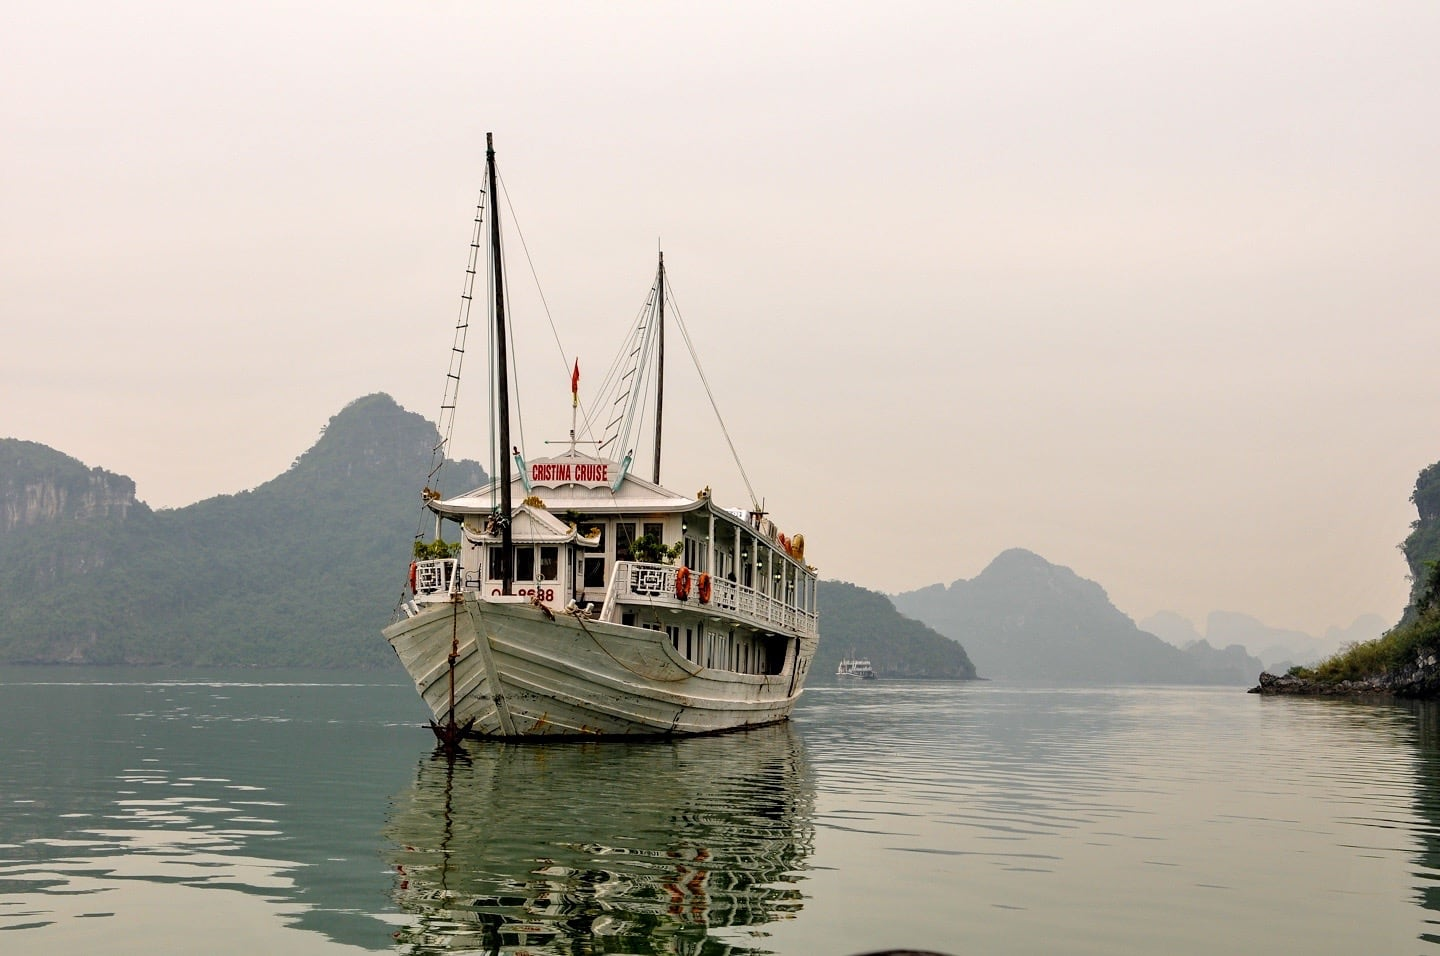 cristina cruise boat halong bay 3 day cruise vietnam